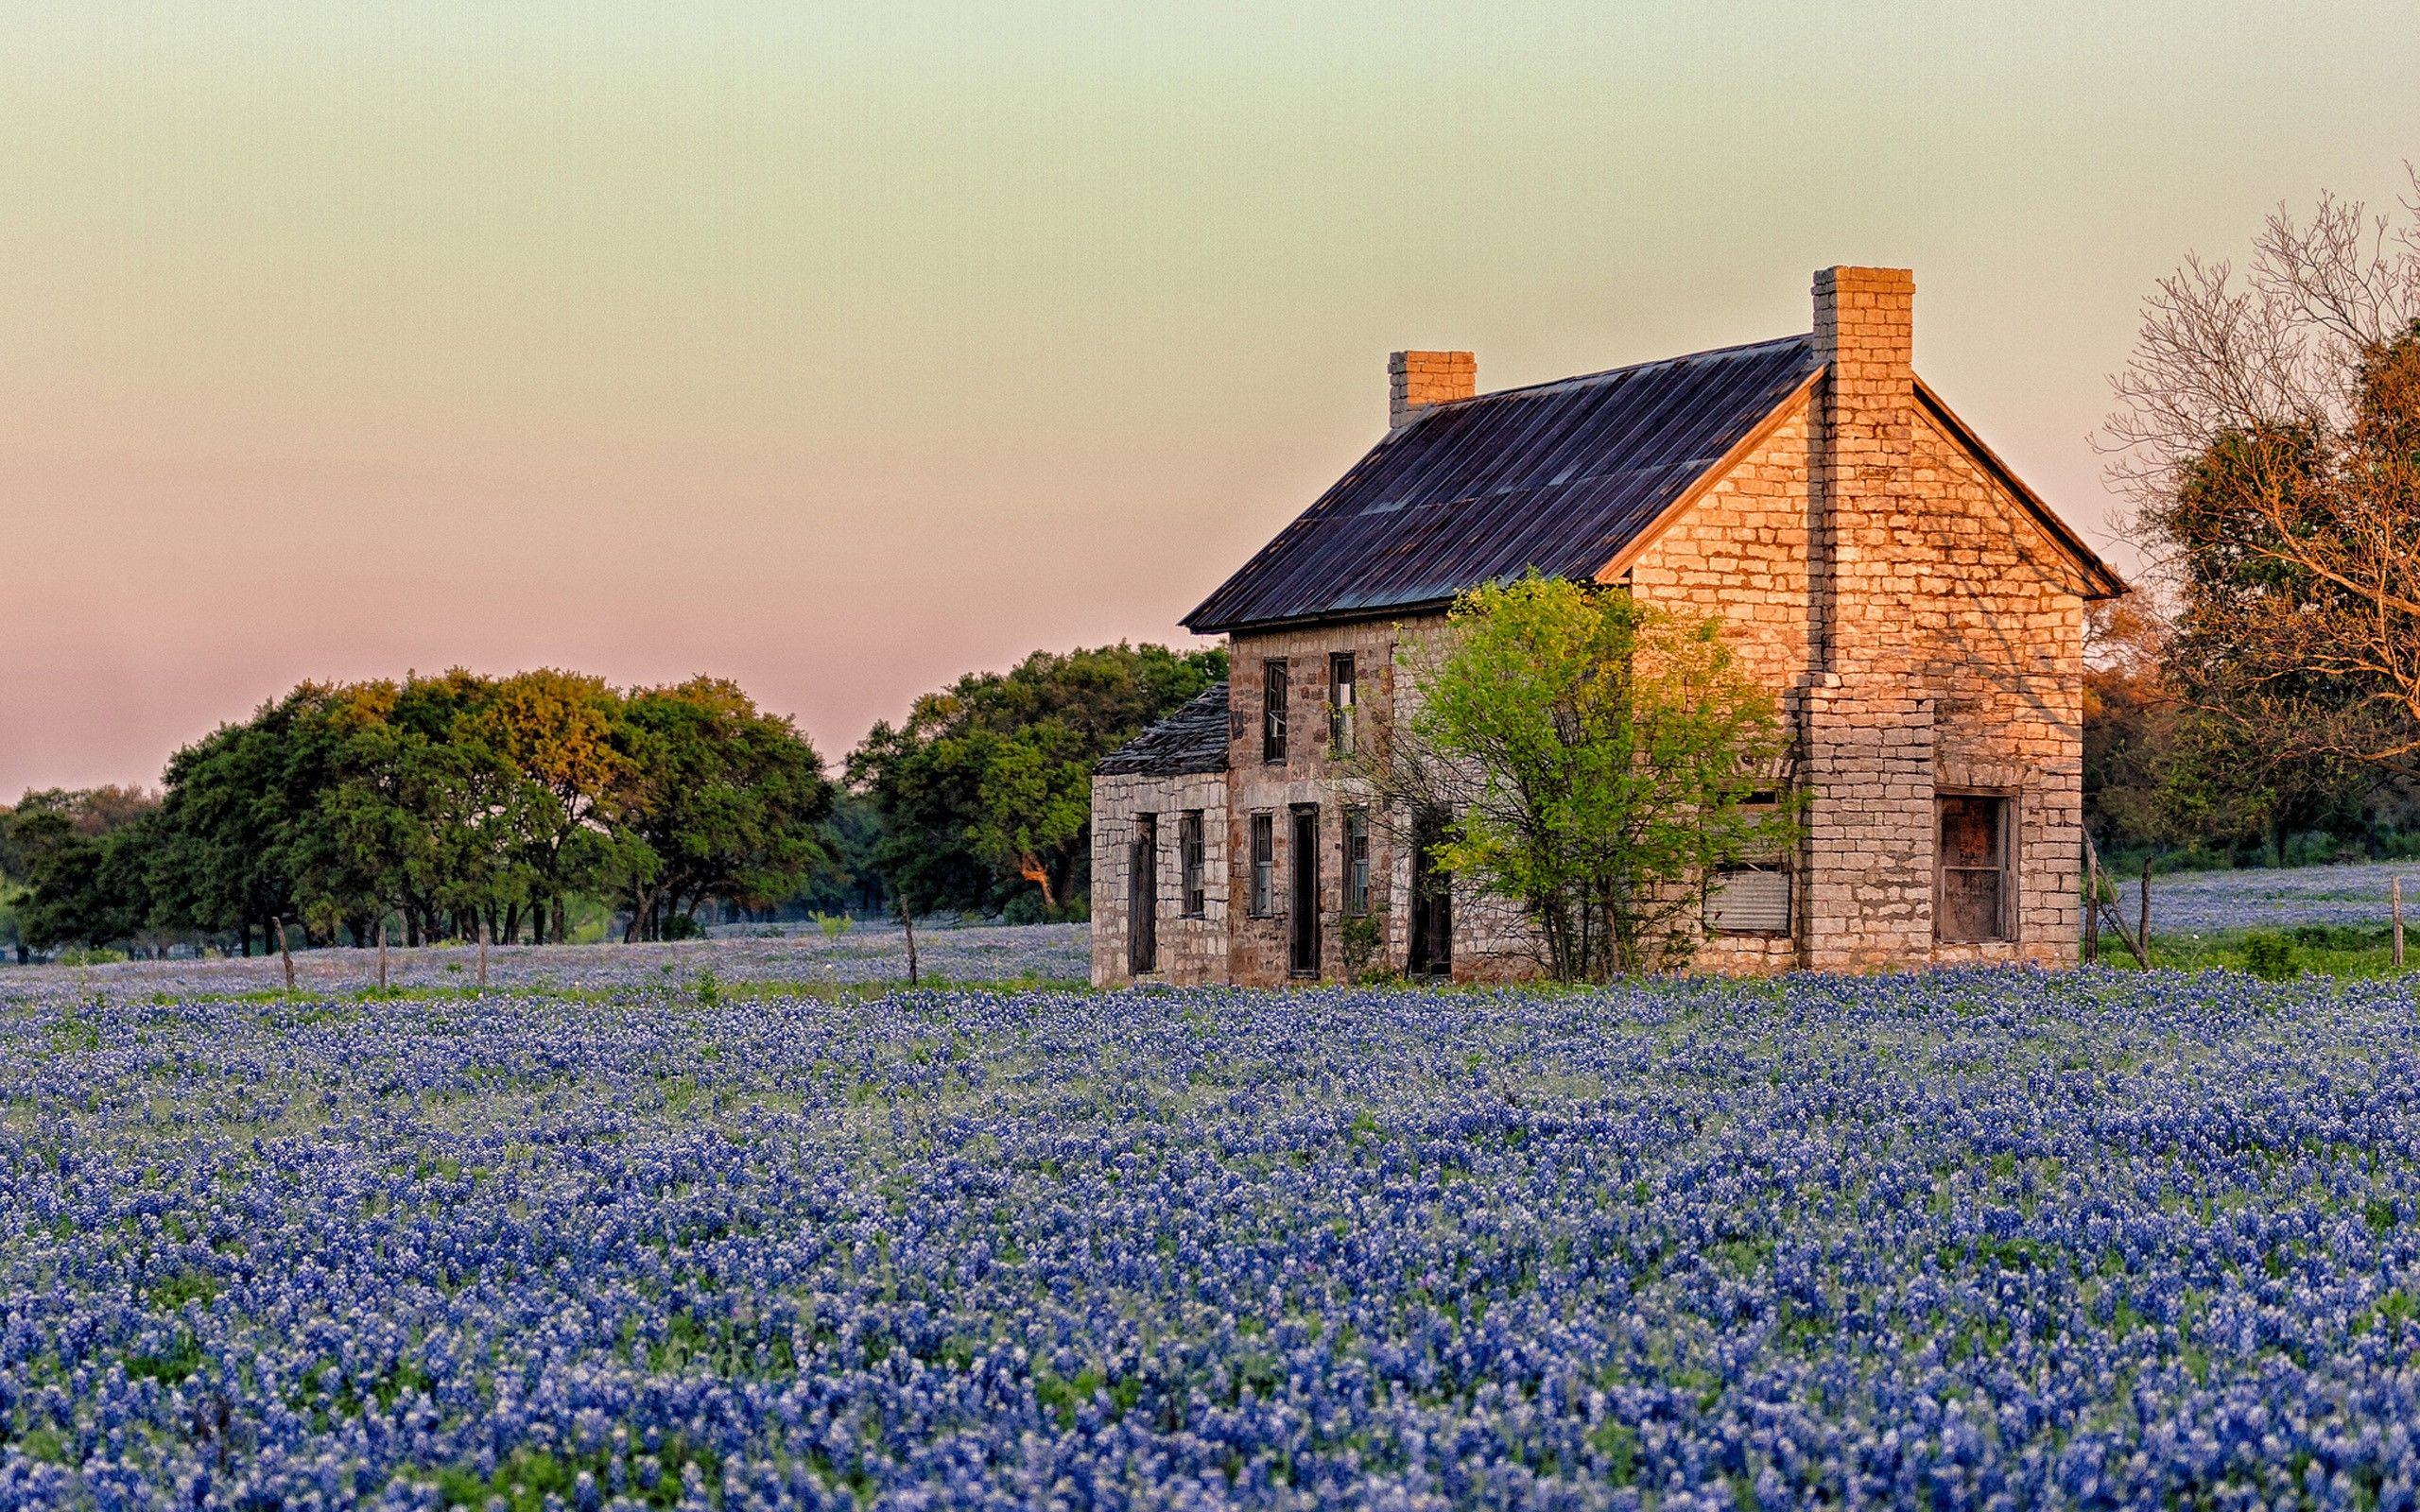 Texas sunlight blue flowers Bluebonnet hd wallpaper Lg pic